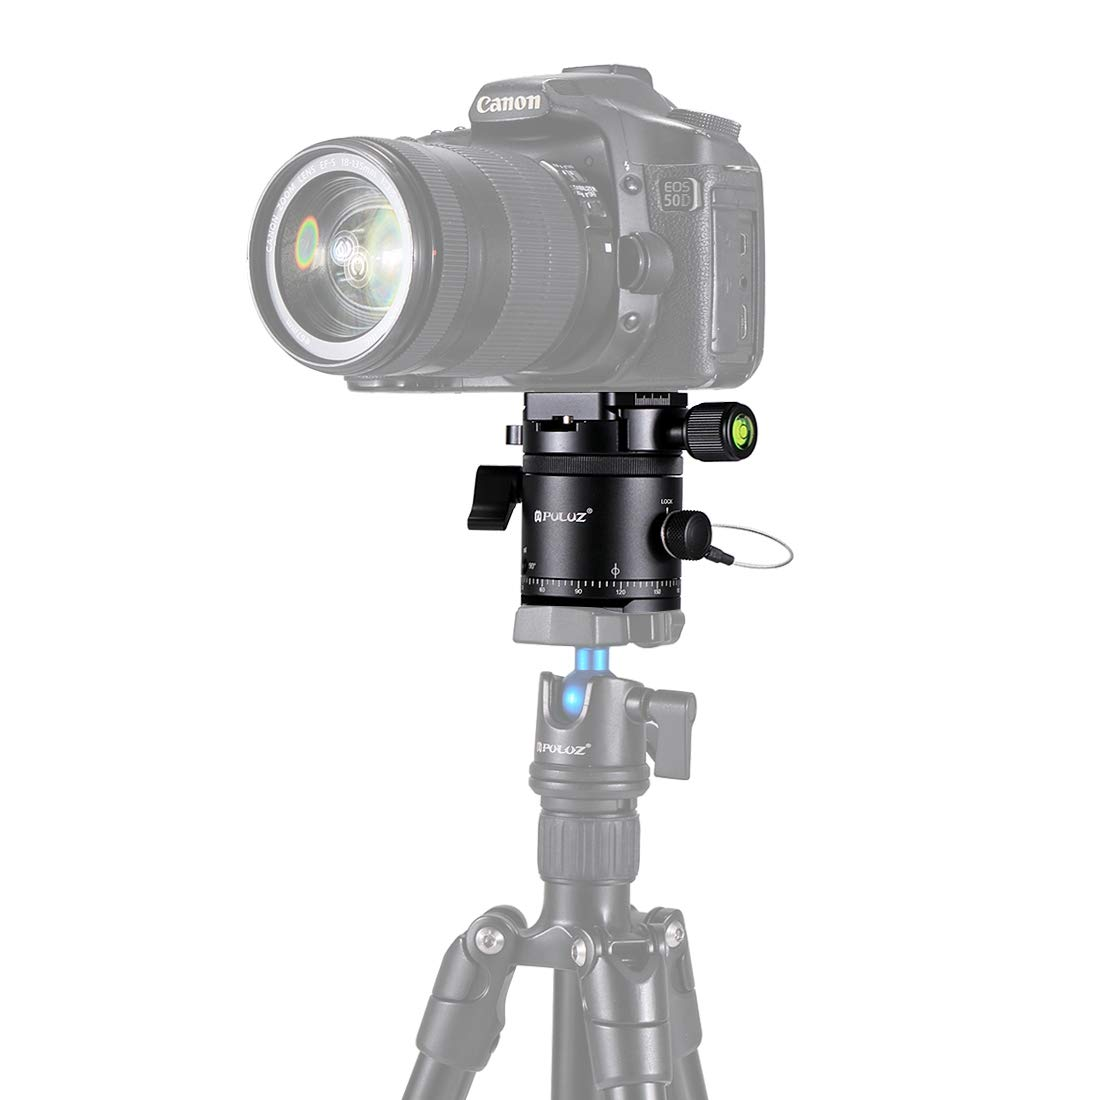 CAOMING Aluminum Alloy Panoramic 360 Degree Indexing Rotator Ball Head with Quick Release Plate for Camera Tripod Head Durable by CAOMING